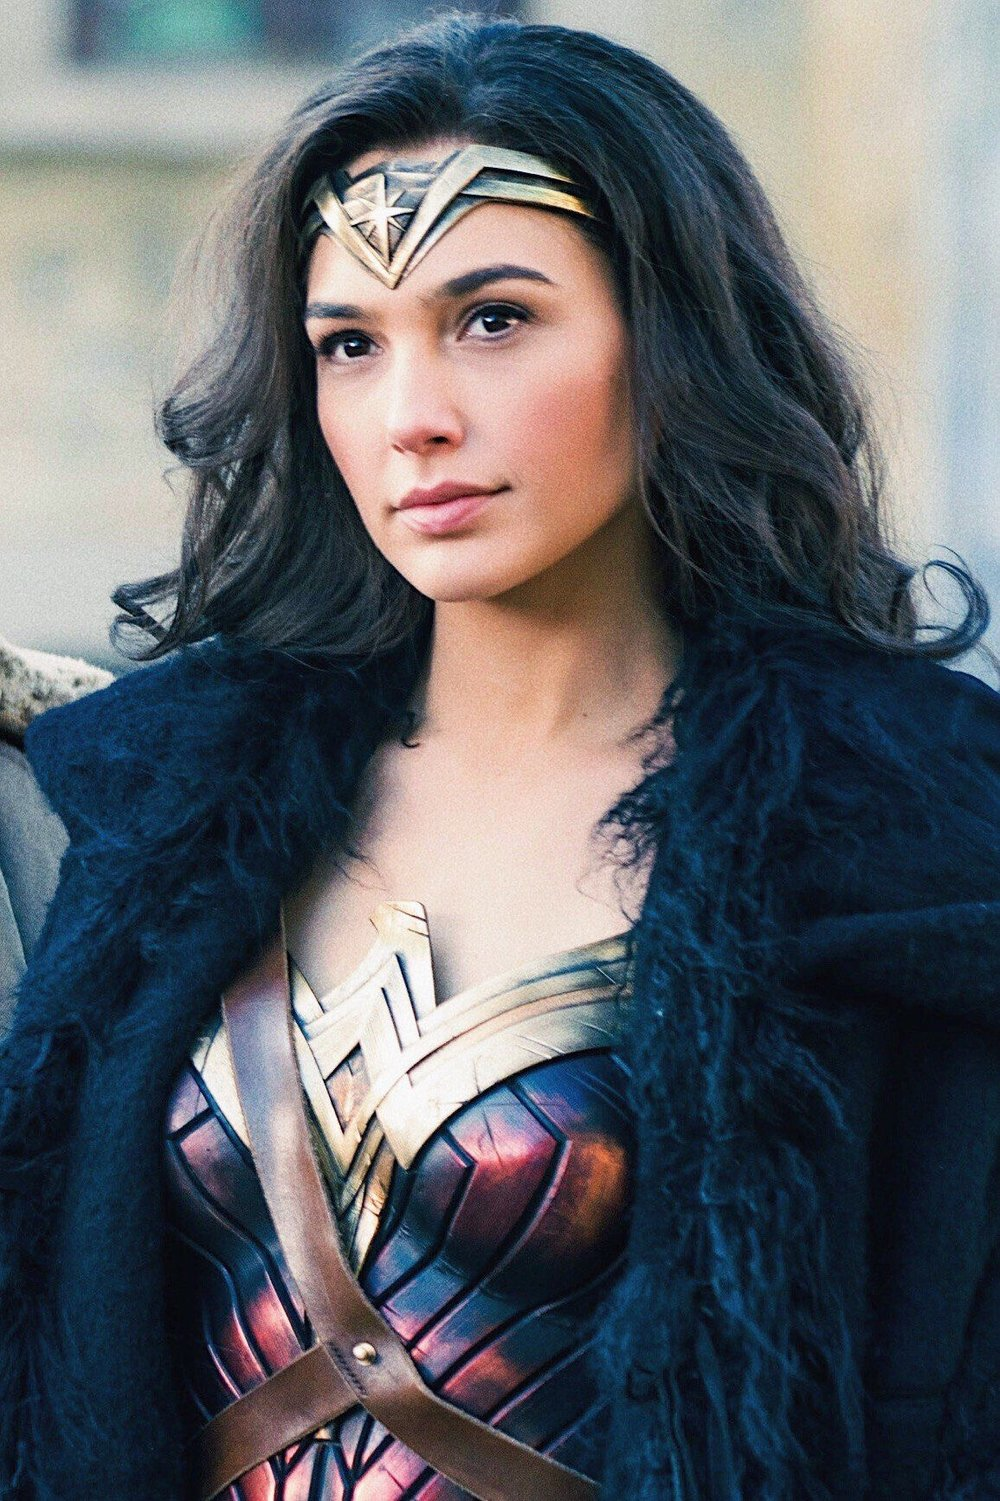 Wonder Woman, played by Gal Gadot